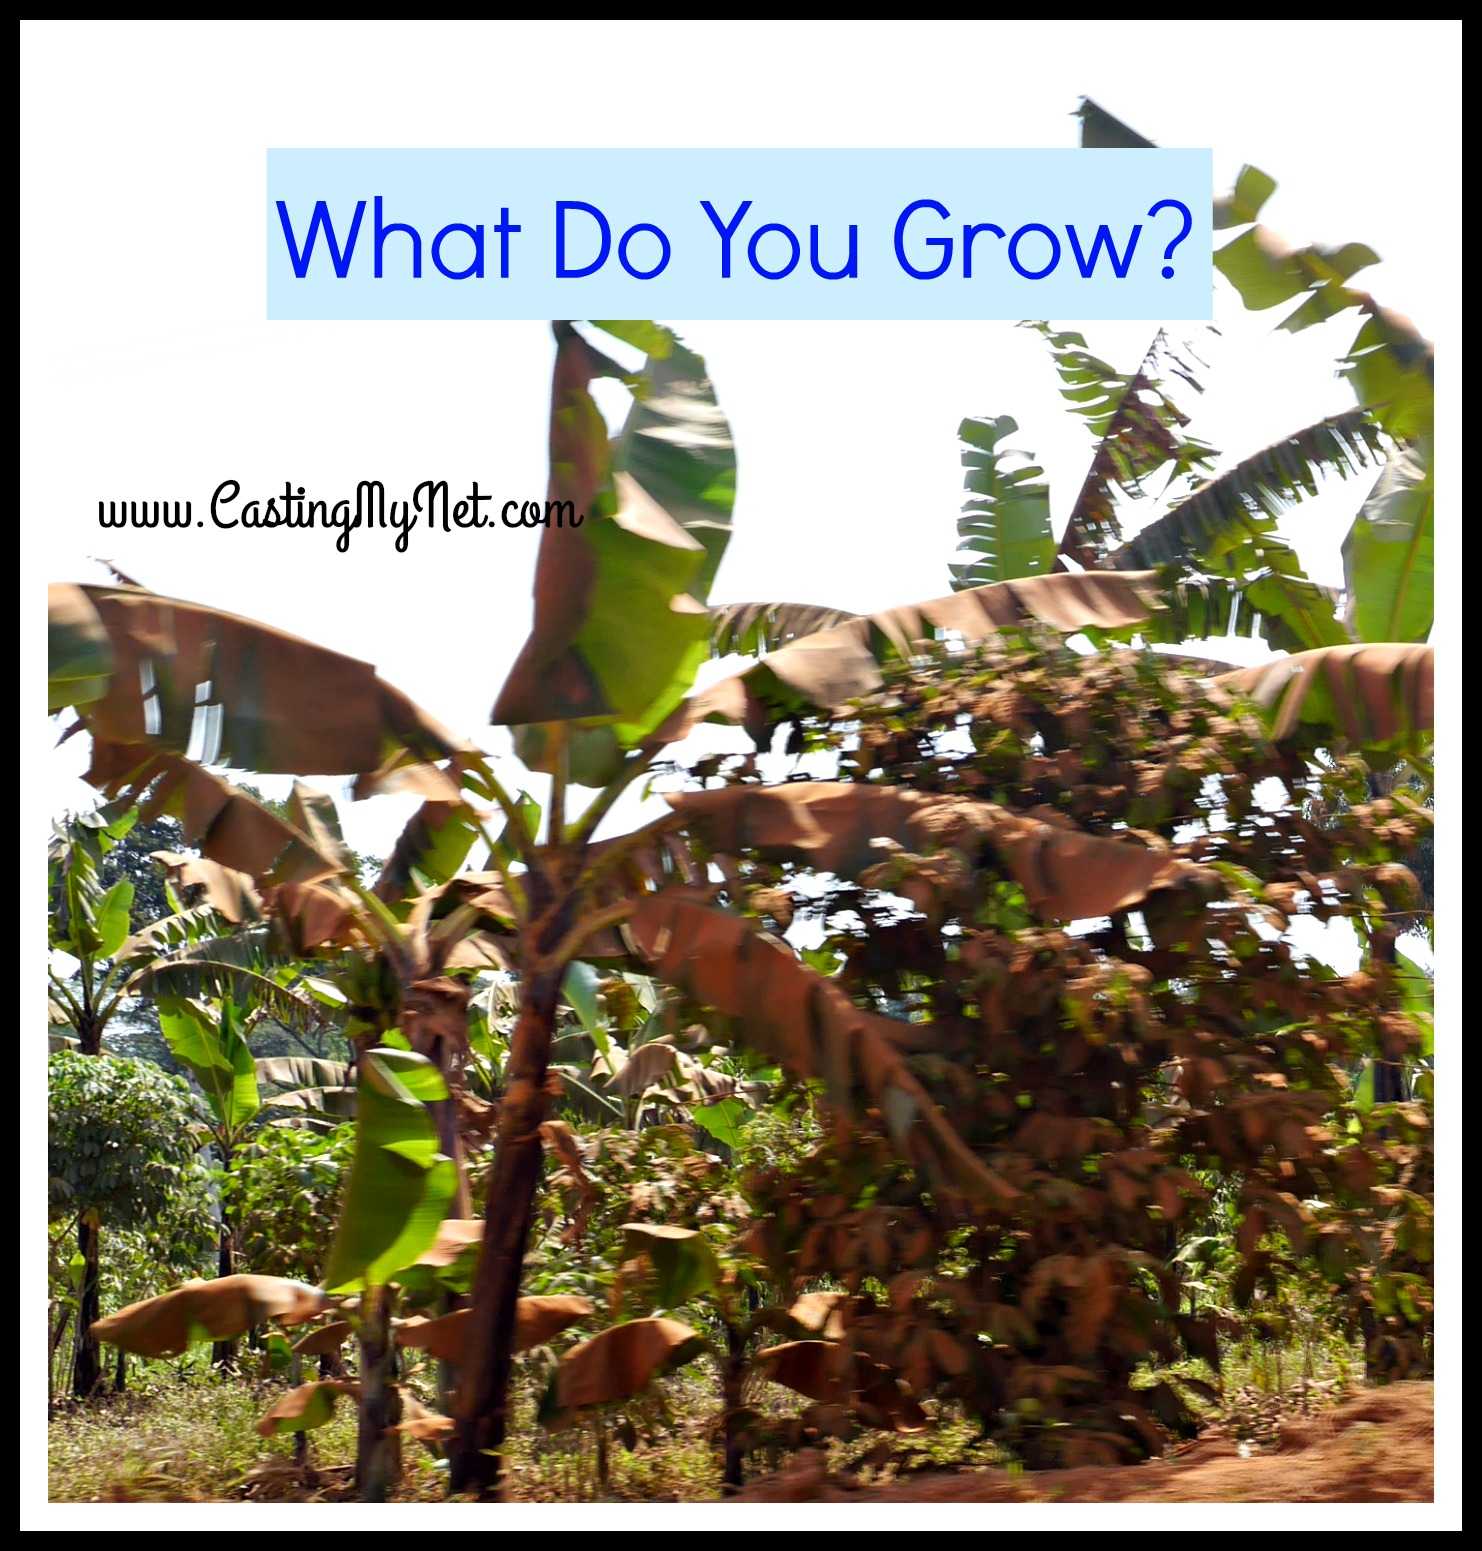 What do you grow?